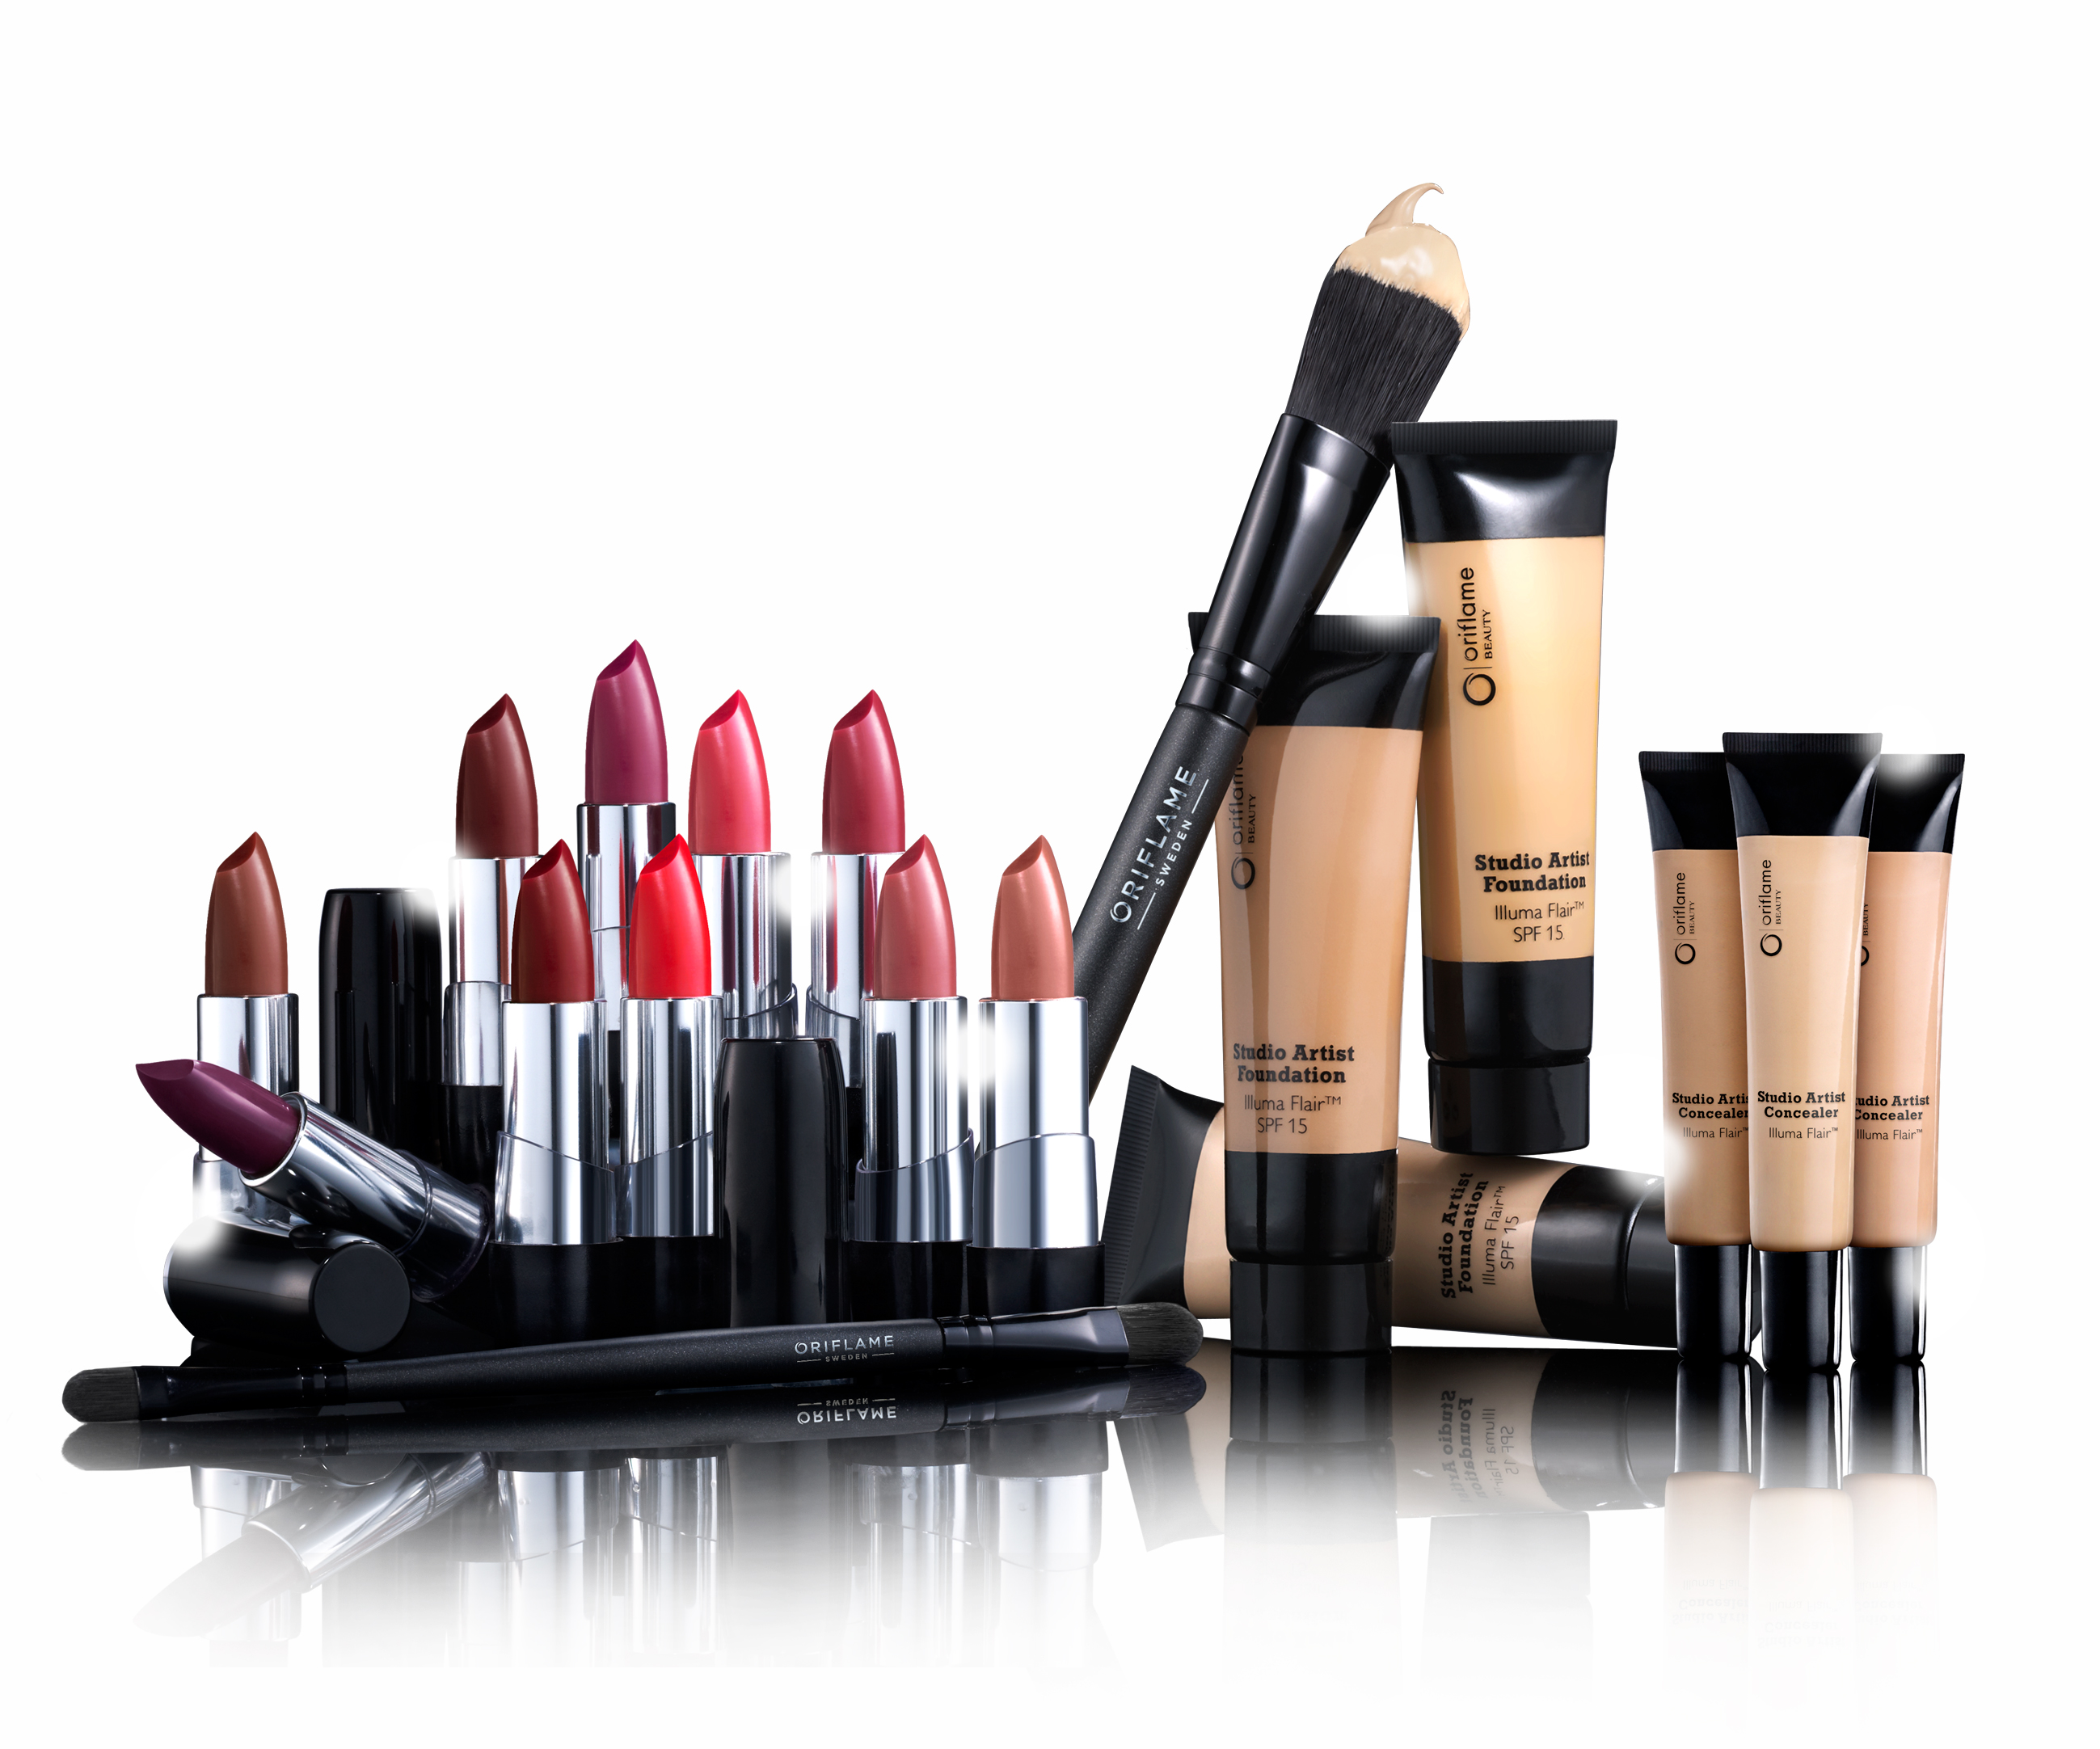 How to Beautify Yourself With Reliable and Safe of Beauty Products?